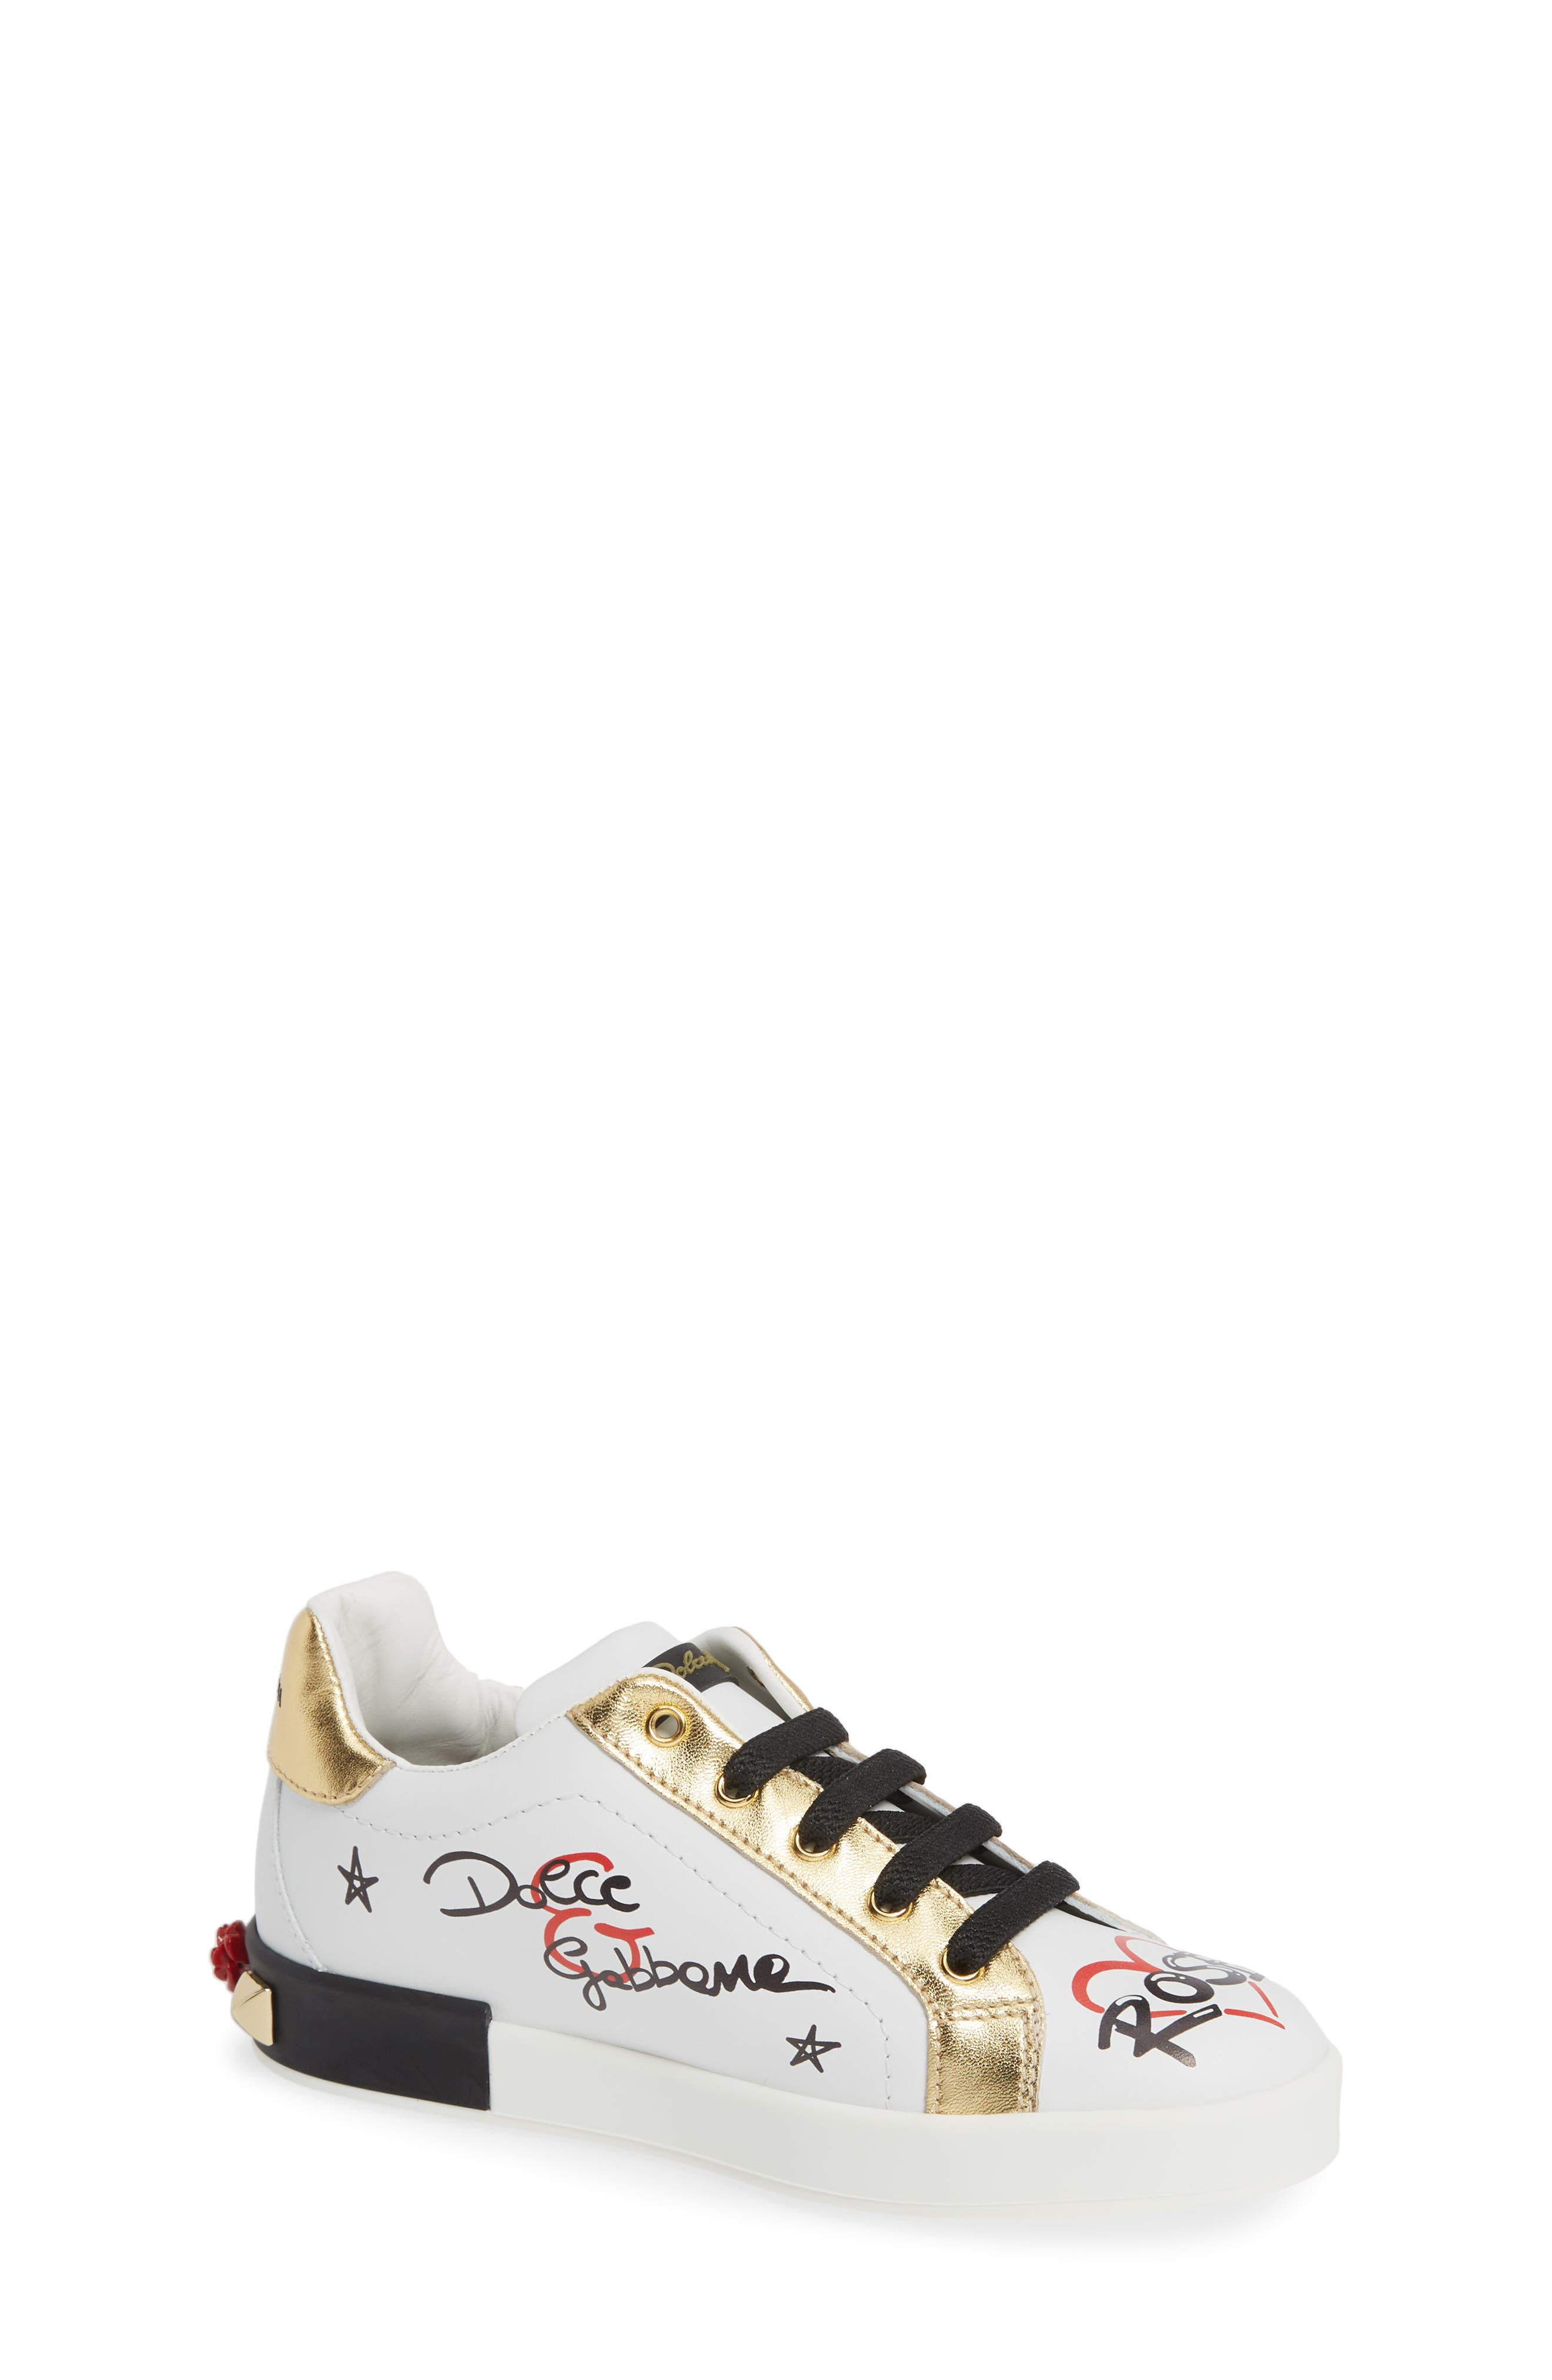 Amore Low Top Sneaker,                             Alternate thumbnail 7, color,                             WHITE